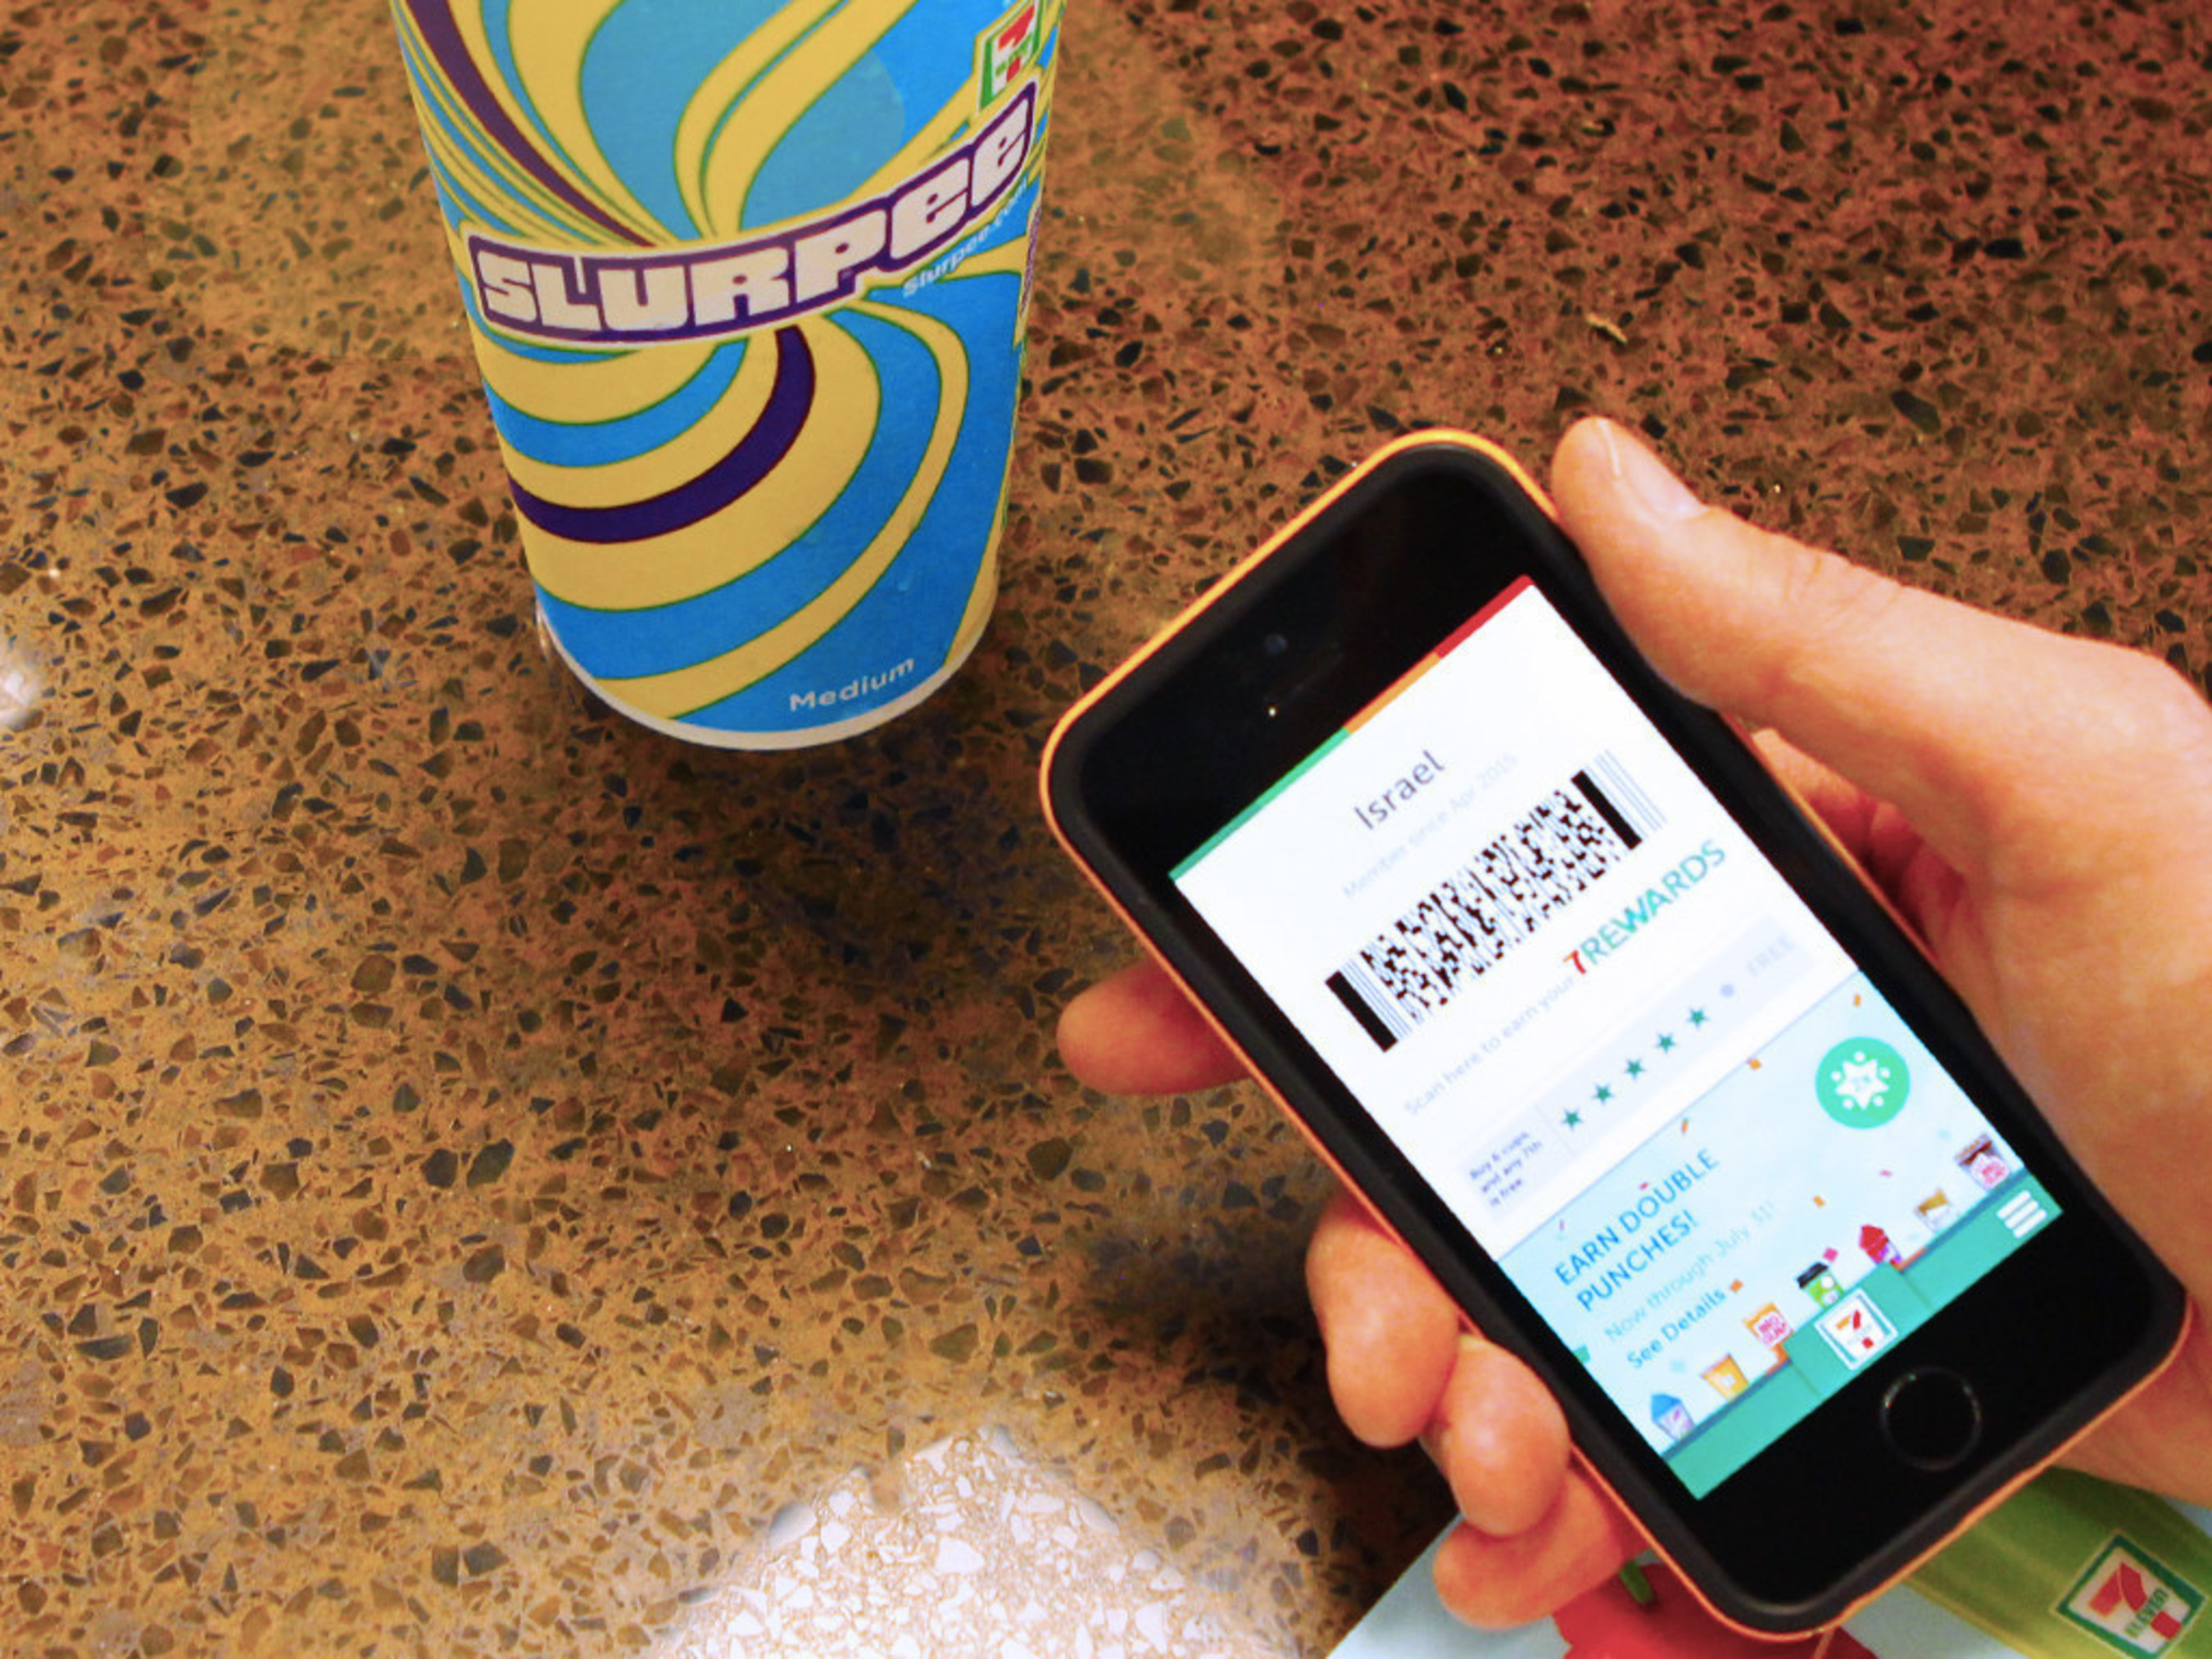 7-Eleven is launching a new offer in August - FREEkends(TM). That's short for FREE Weekends, and the offer is just that. 7-Eleven will launch its FREEkend offers Aug. 1 for 7Rewards members using the 7-Eleven mobile app.